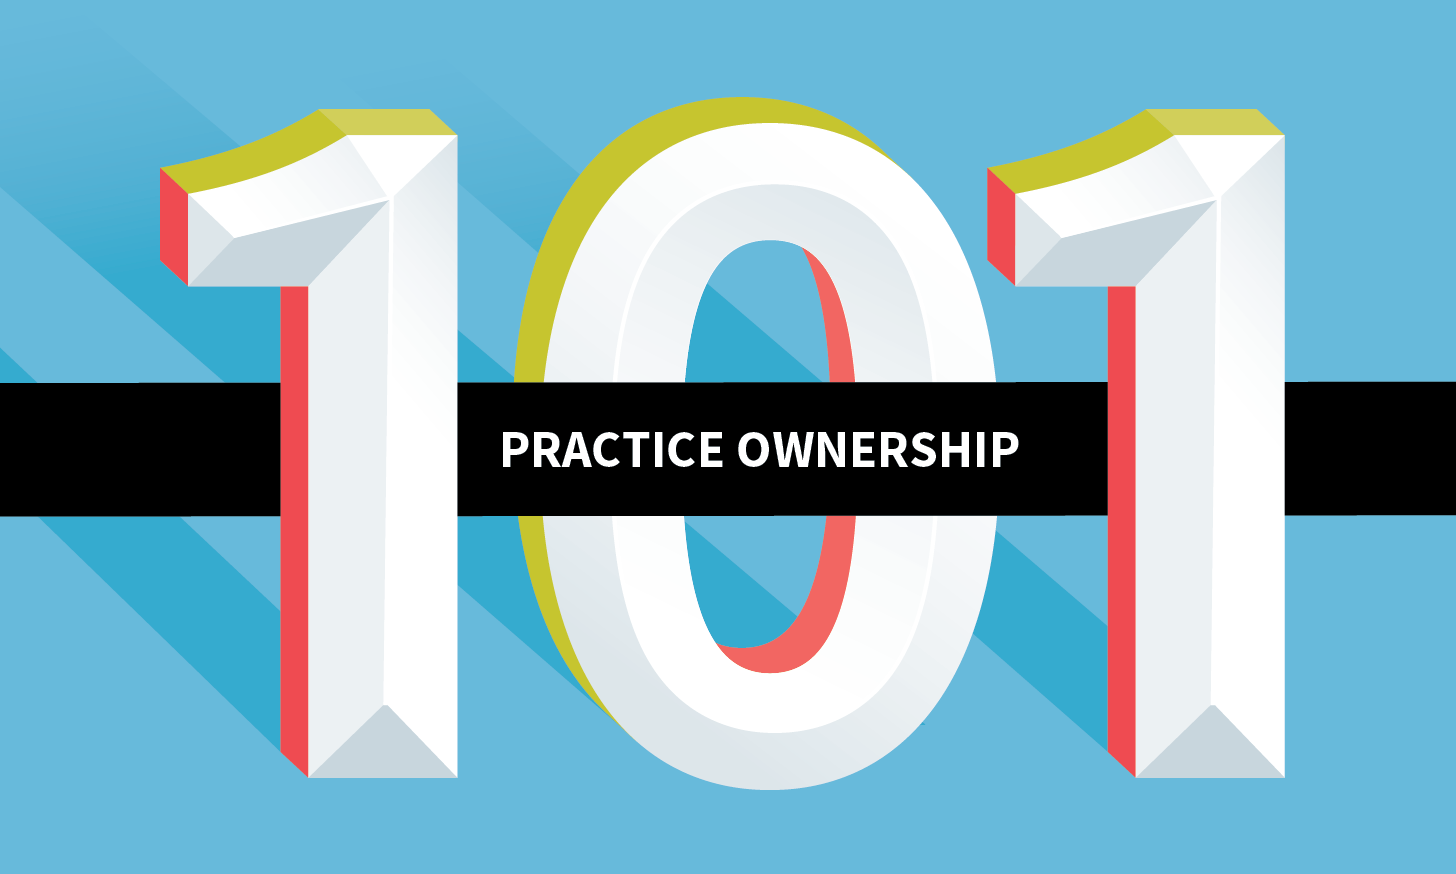 Advice for New & Future Practice Owners